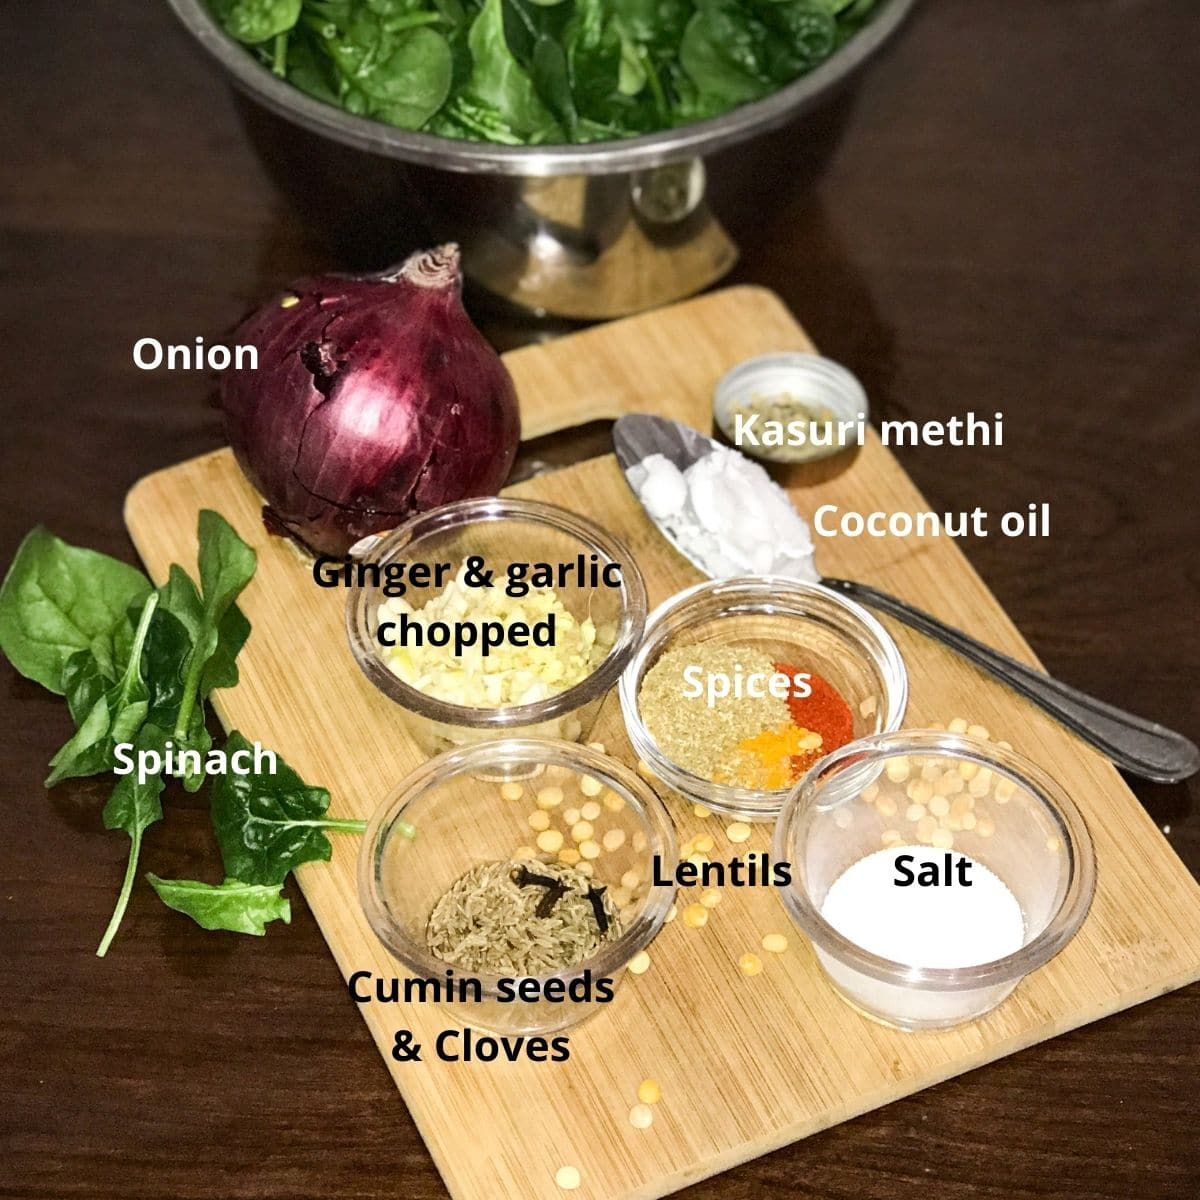 all the ingredients are placed on the table for spinach dal